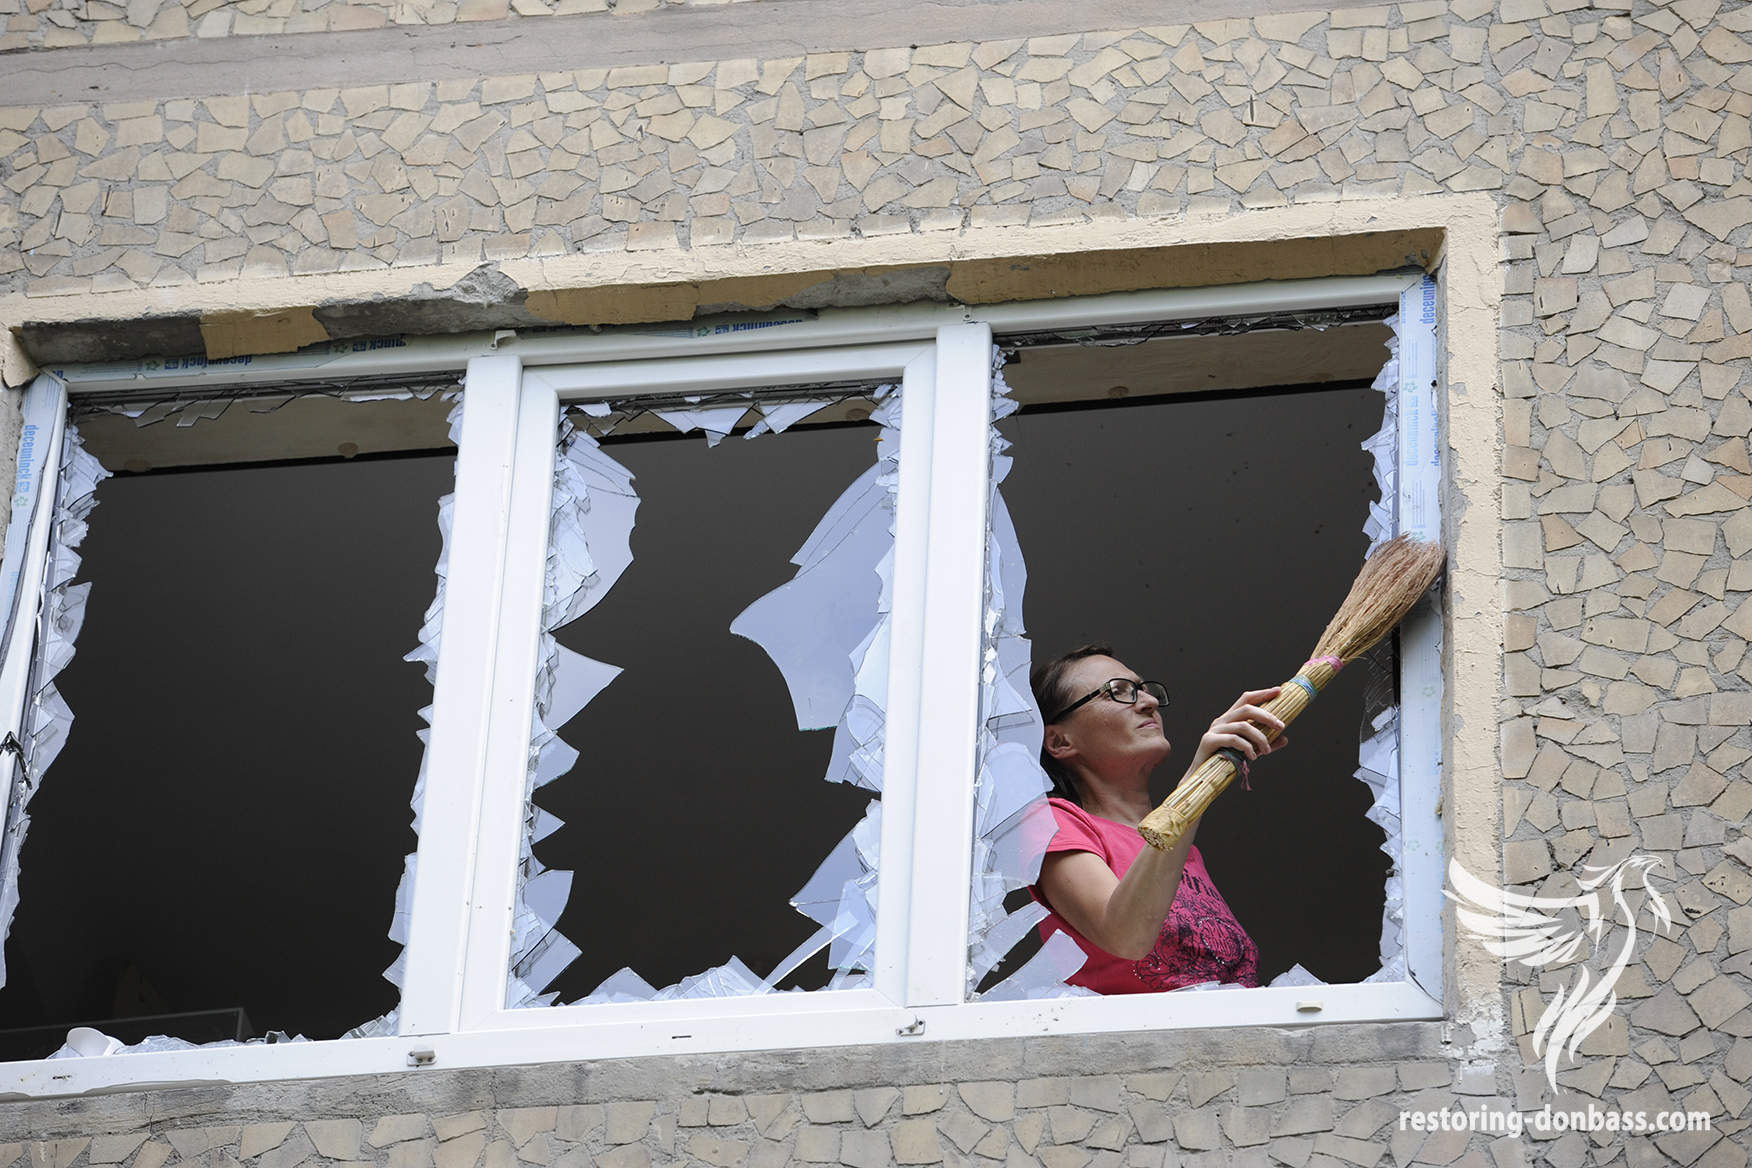 Donetsk residents are putting in order their apartments after a night of shelling, May 3, 2015